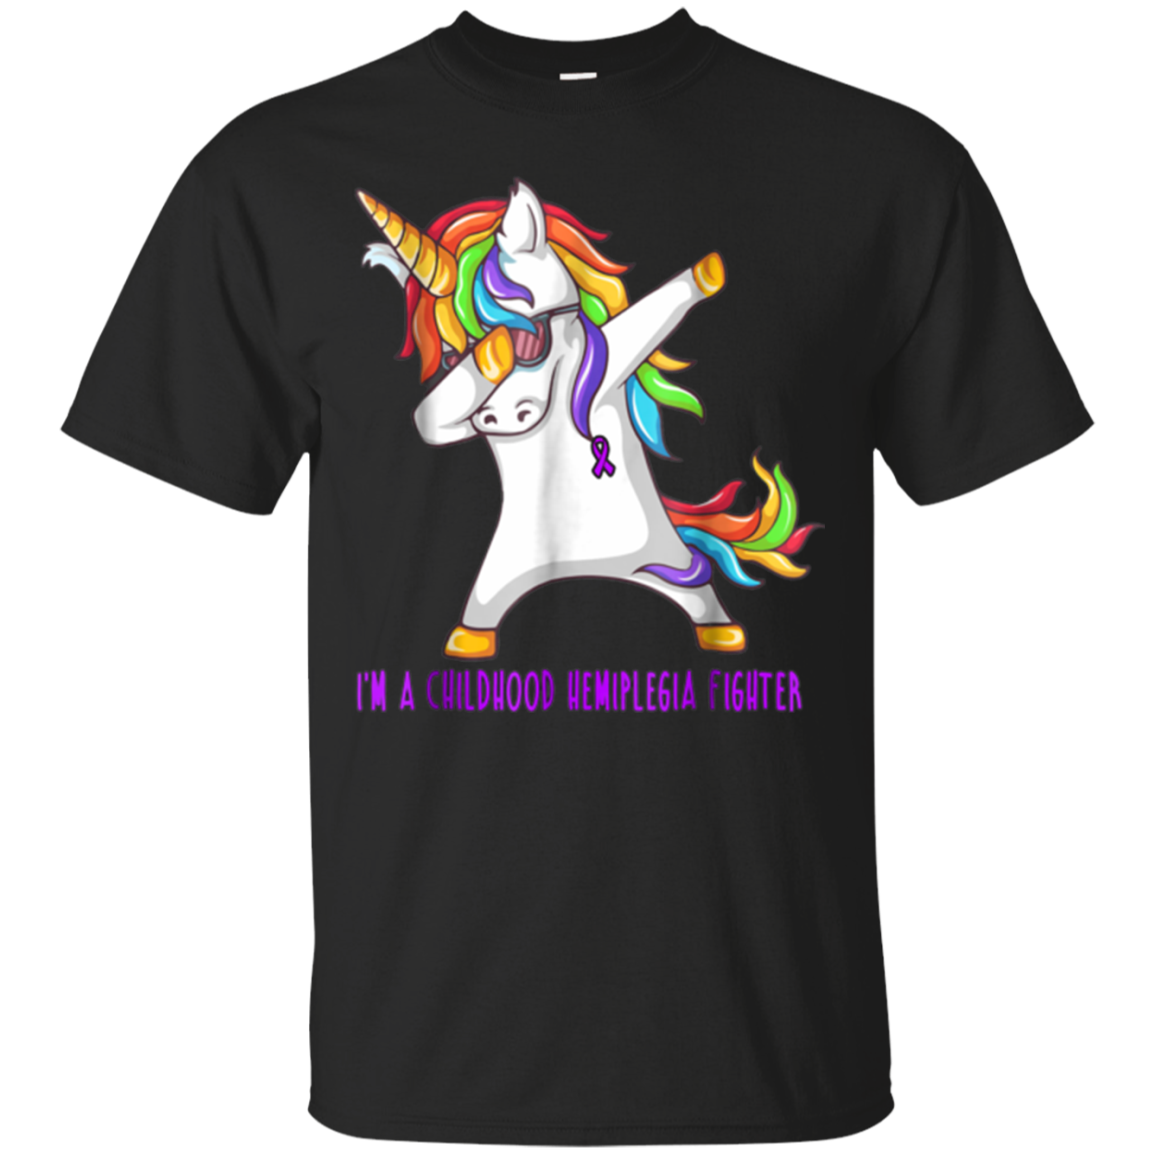 Unicorn Childhood Hemiplegia Awareness Shirt